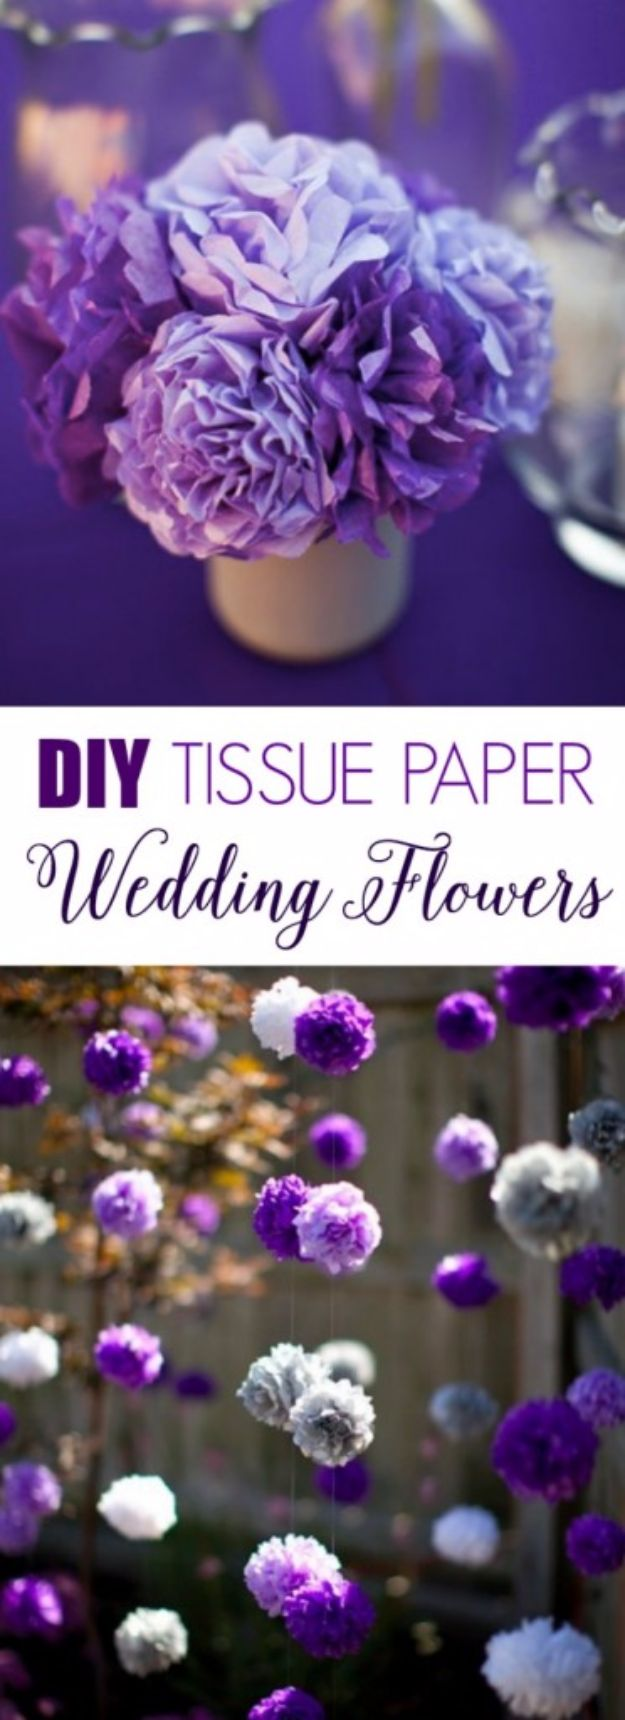 DIY Paper Flowers - DIY Tissue Paper Flowers - How To Make A Paper Flower - Large Wedding Backdrop for Wall Decor - Easy Tissue Paper Flower Tutorial for Kids - Giant Projects for Photo Backdrops - Daisy, Roses, Bouquets, Centerpieces - Cricut Template and Step by Step Tutorial http://diyjoy.com/diy-paper-flowers